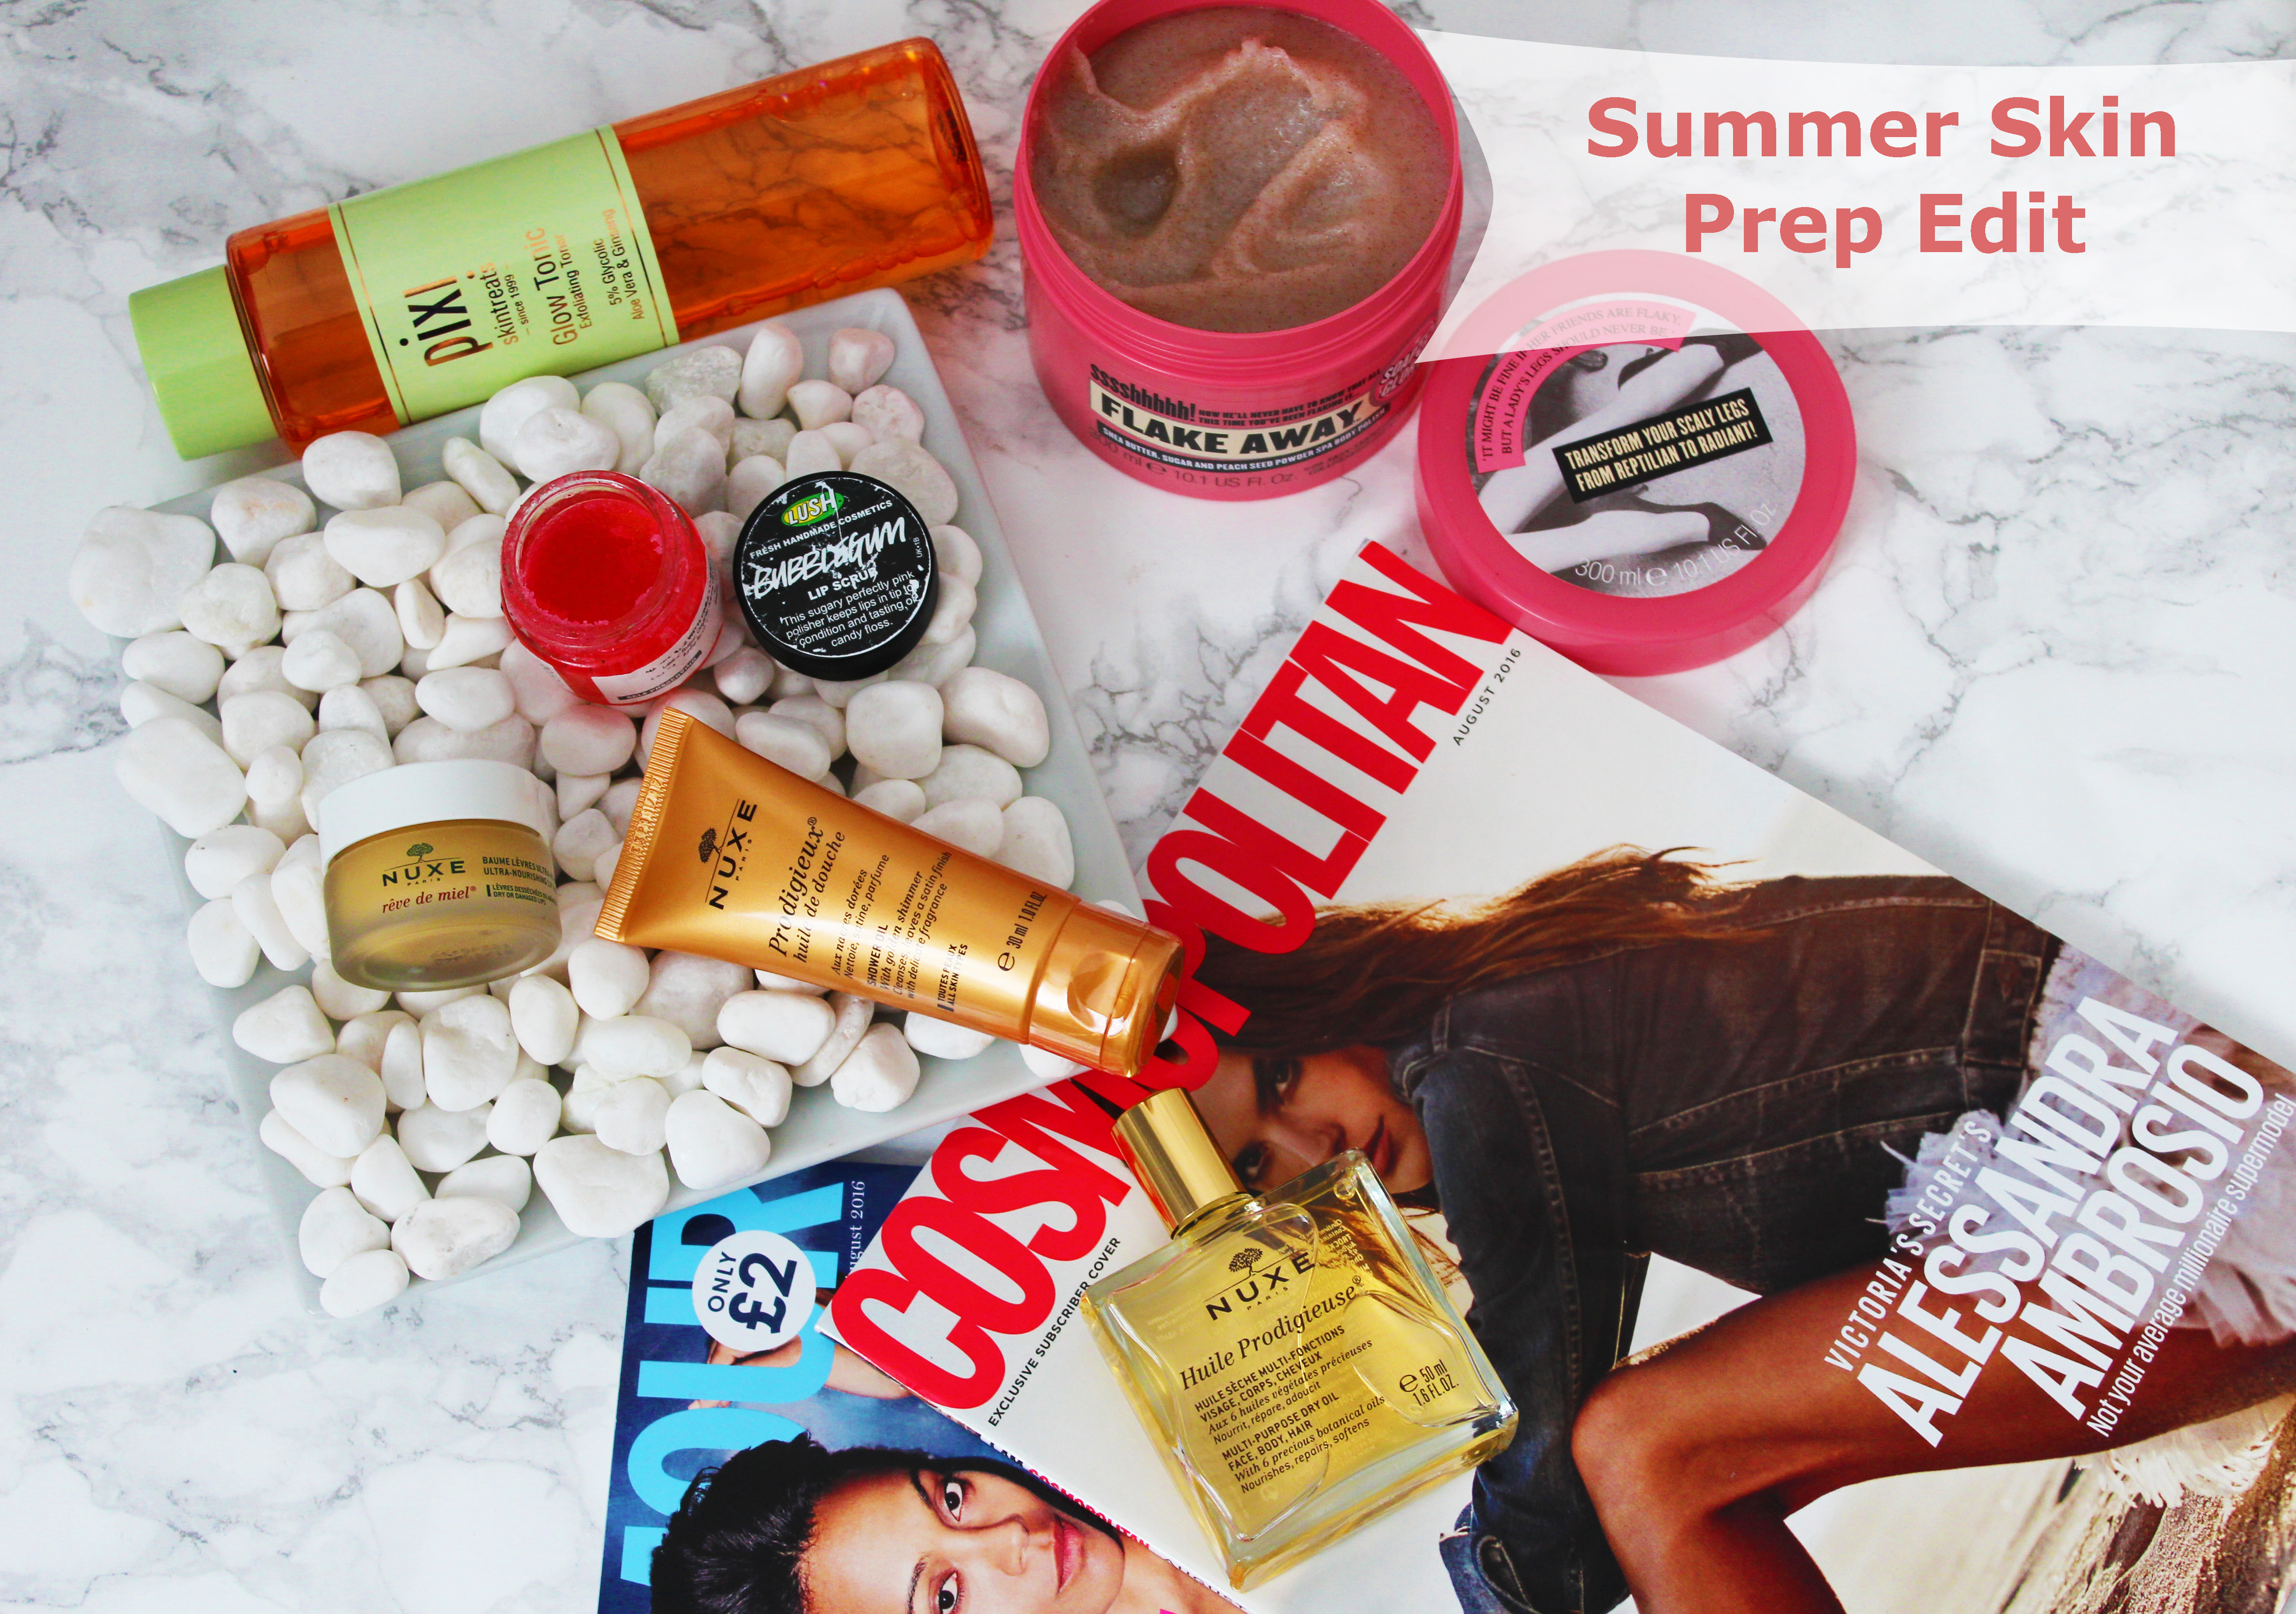 Summer skin prep edit